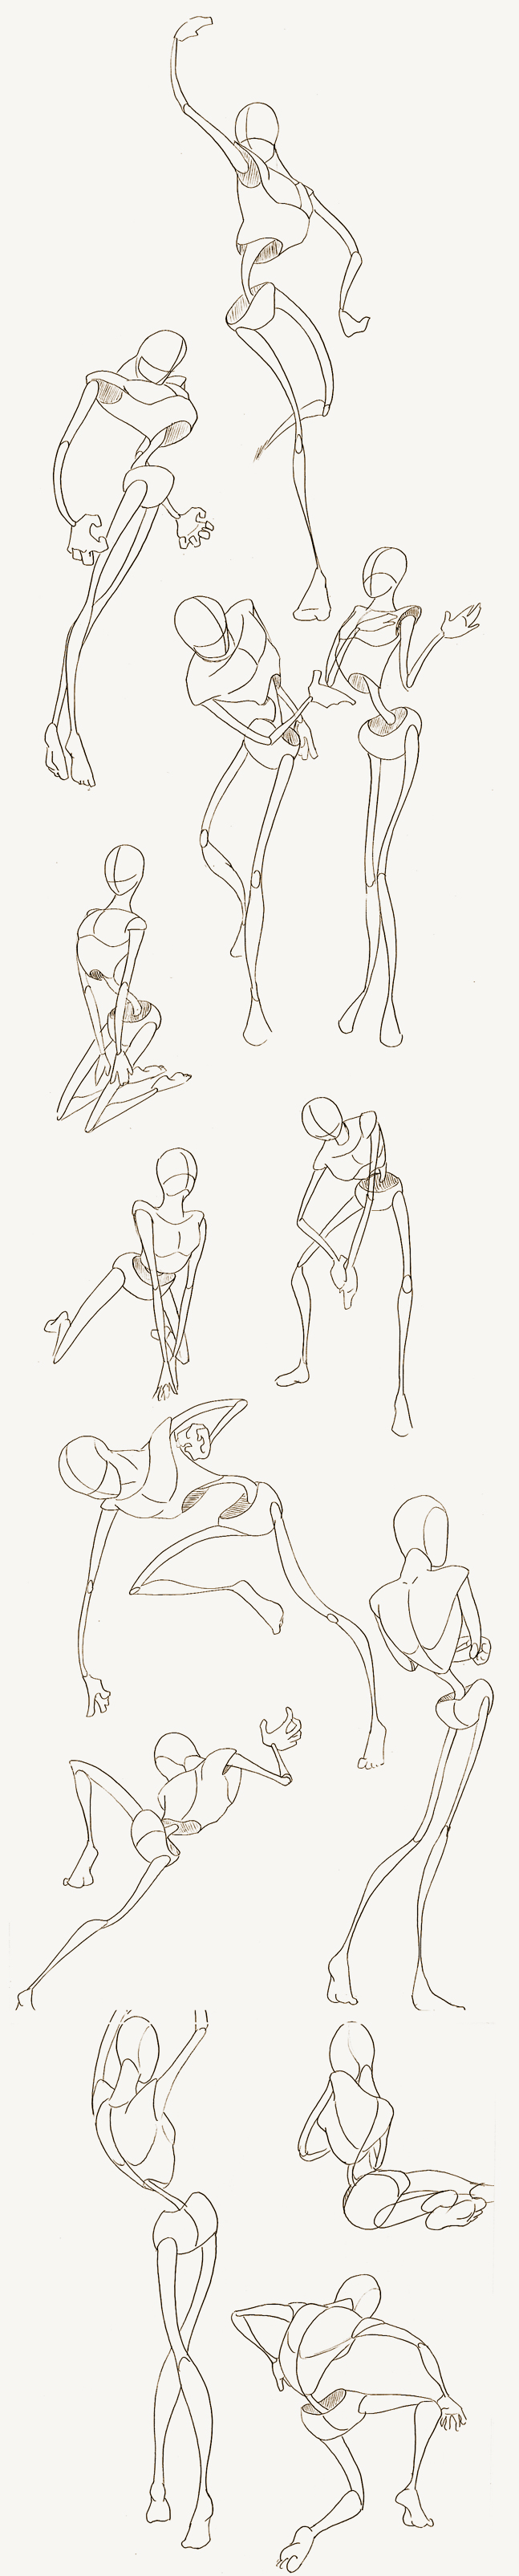 my study in anatomy, breaking it down into shapes... To learn how to ...